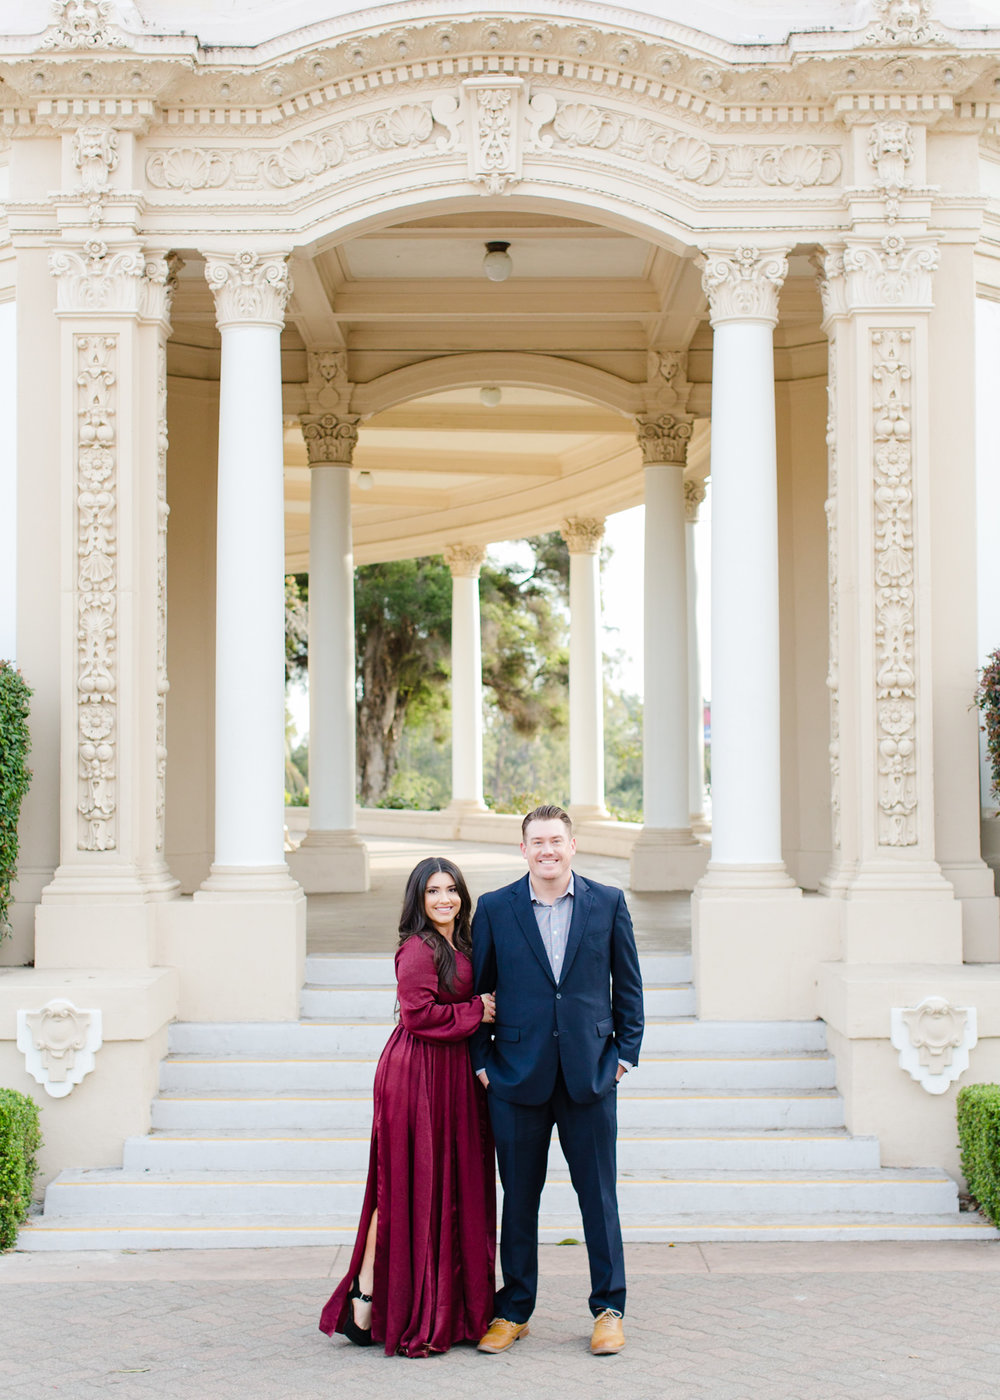 katherine-beth-photography-san-diego-wedding-photographer-san-diego-family-photographer-balboa-park-engagement_002.jpg